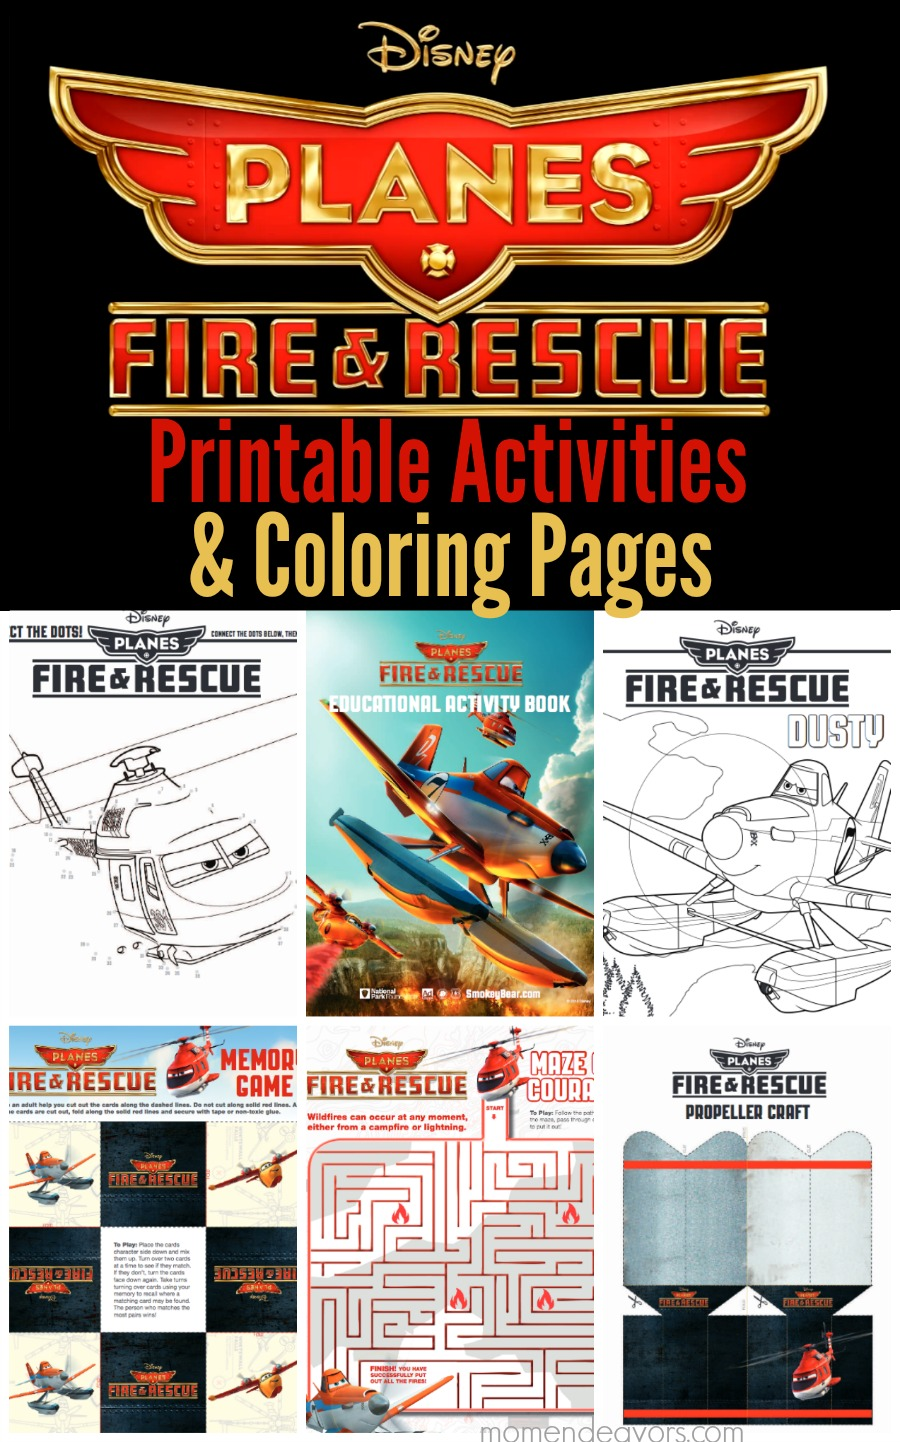 Disney Planes Fire amp Rescue Printable